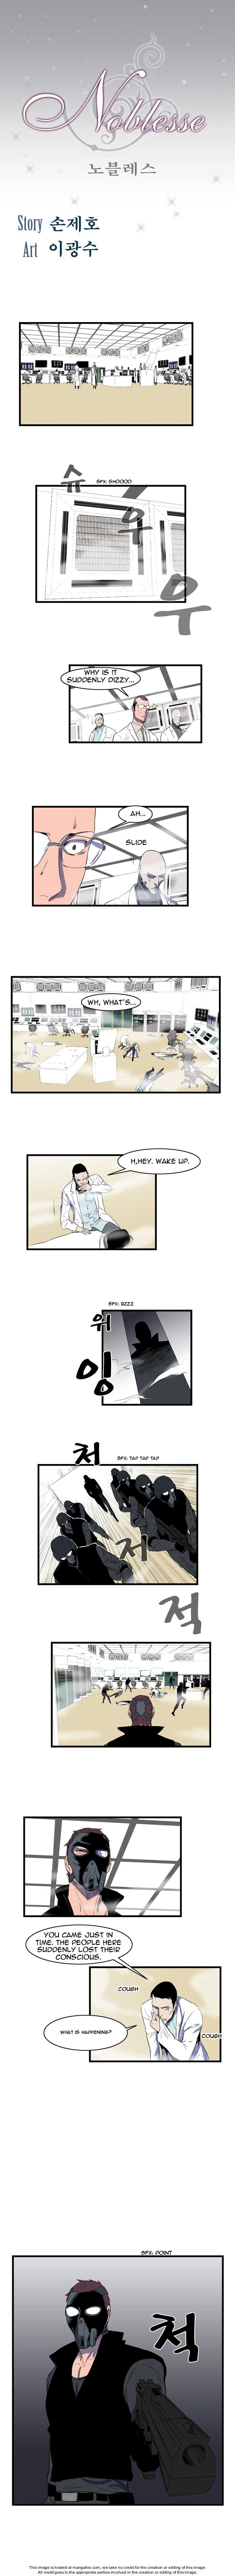 Noblesse 84 Page 1